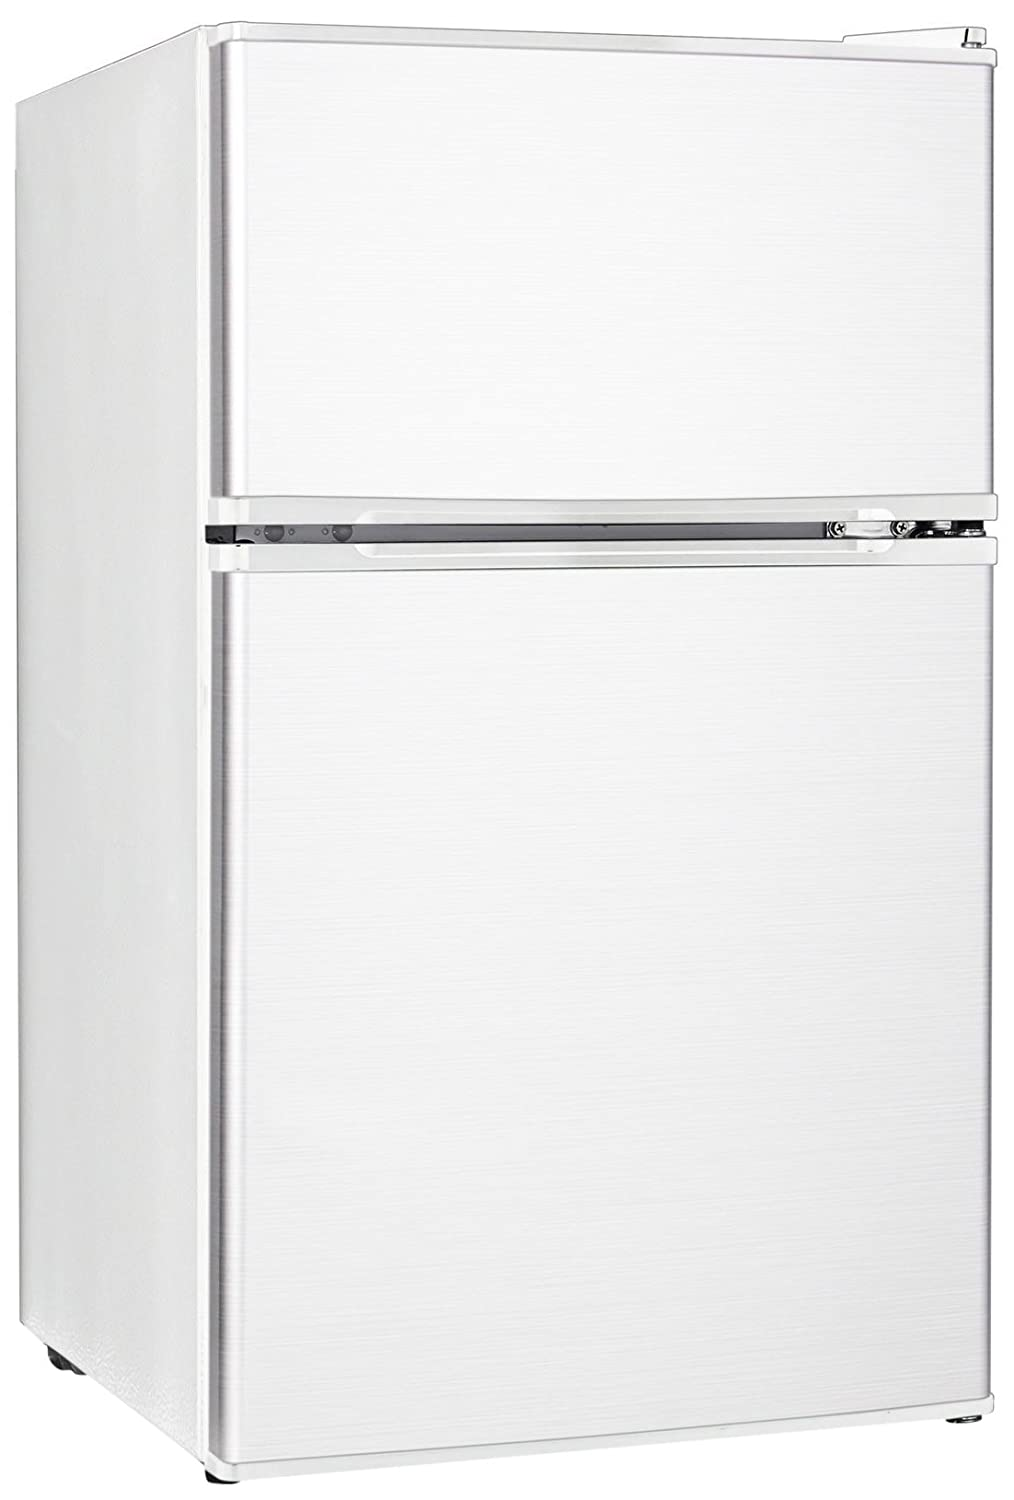 Midea WHD-113FW1 Compact Reversible Double Door Refrigerator and Freezer, 3.1 Cubic Feet, White